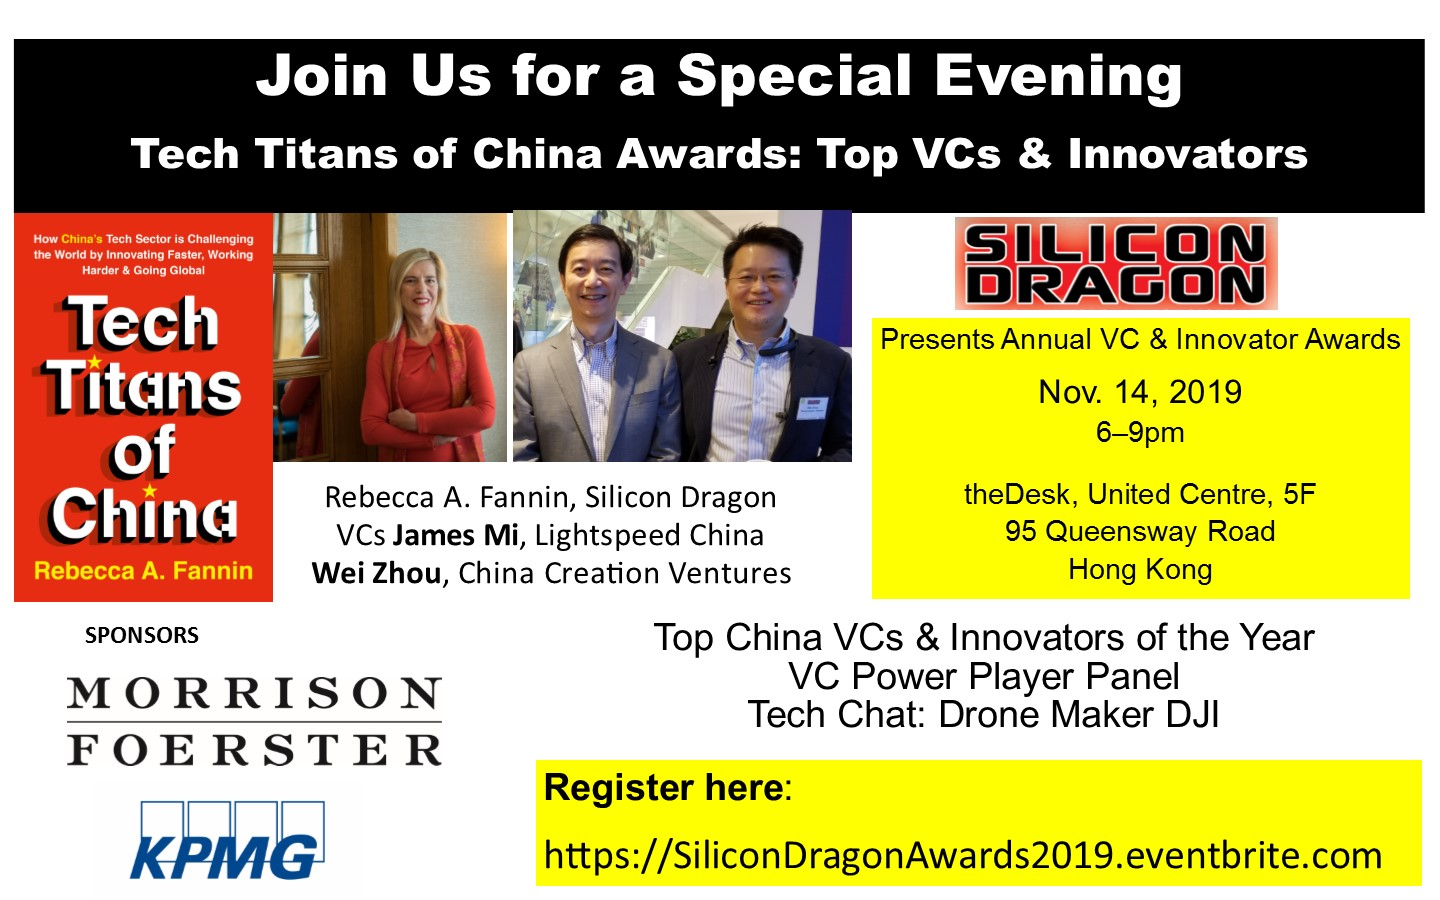 POSTPONED! Silicon Dragon Awards 2019